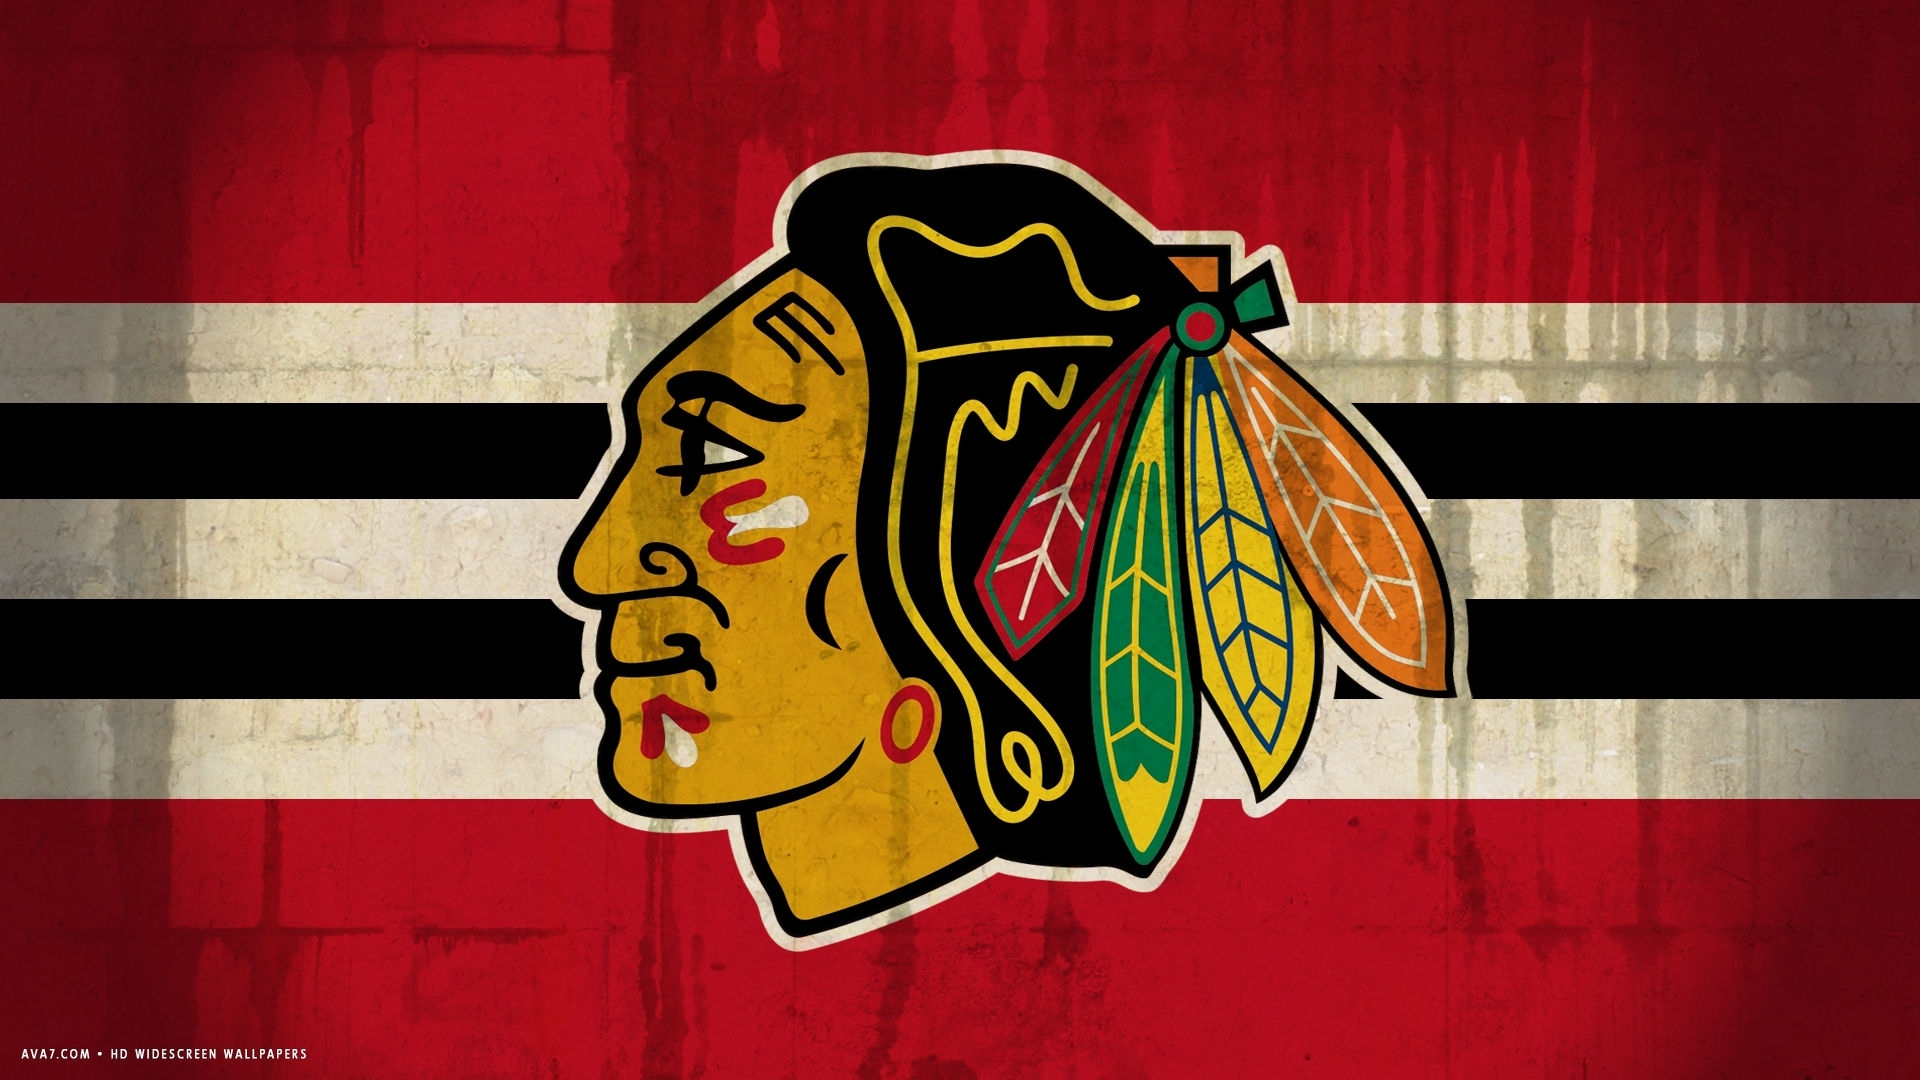 chicago blackhawks nfl hockey team hd widescreen wallpaper / hockey